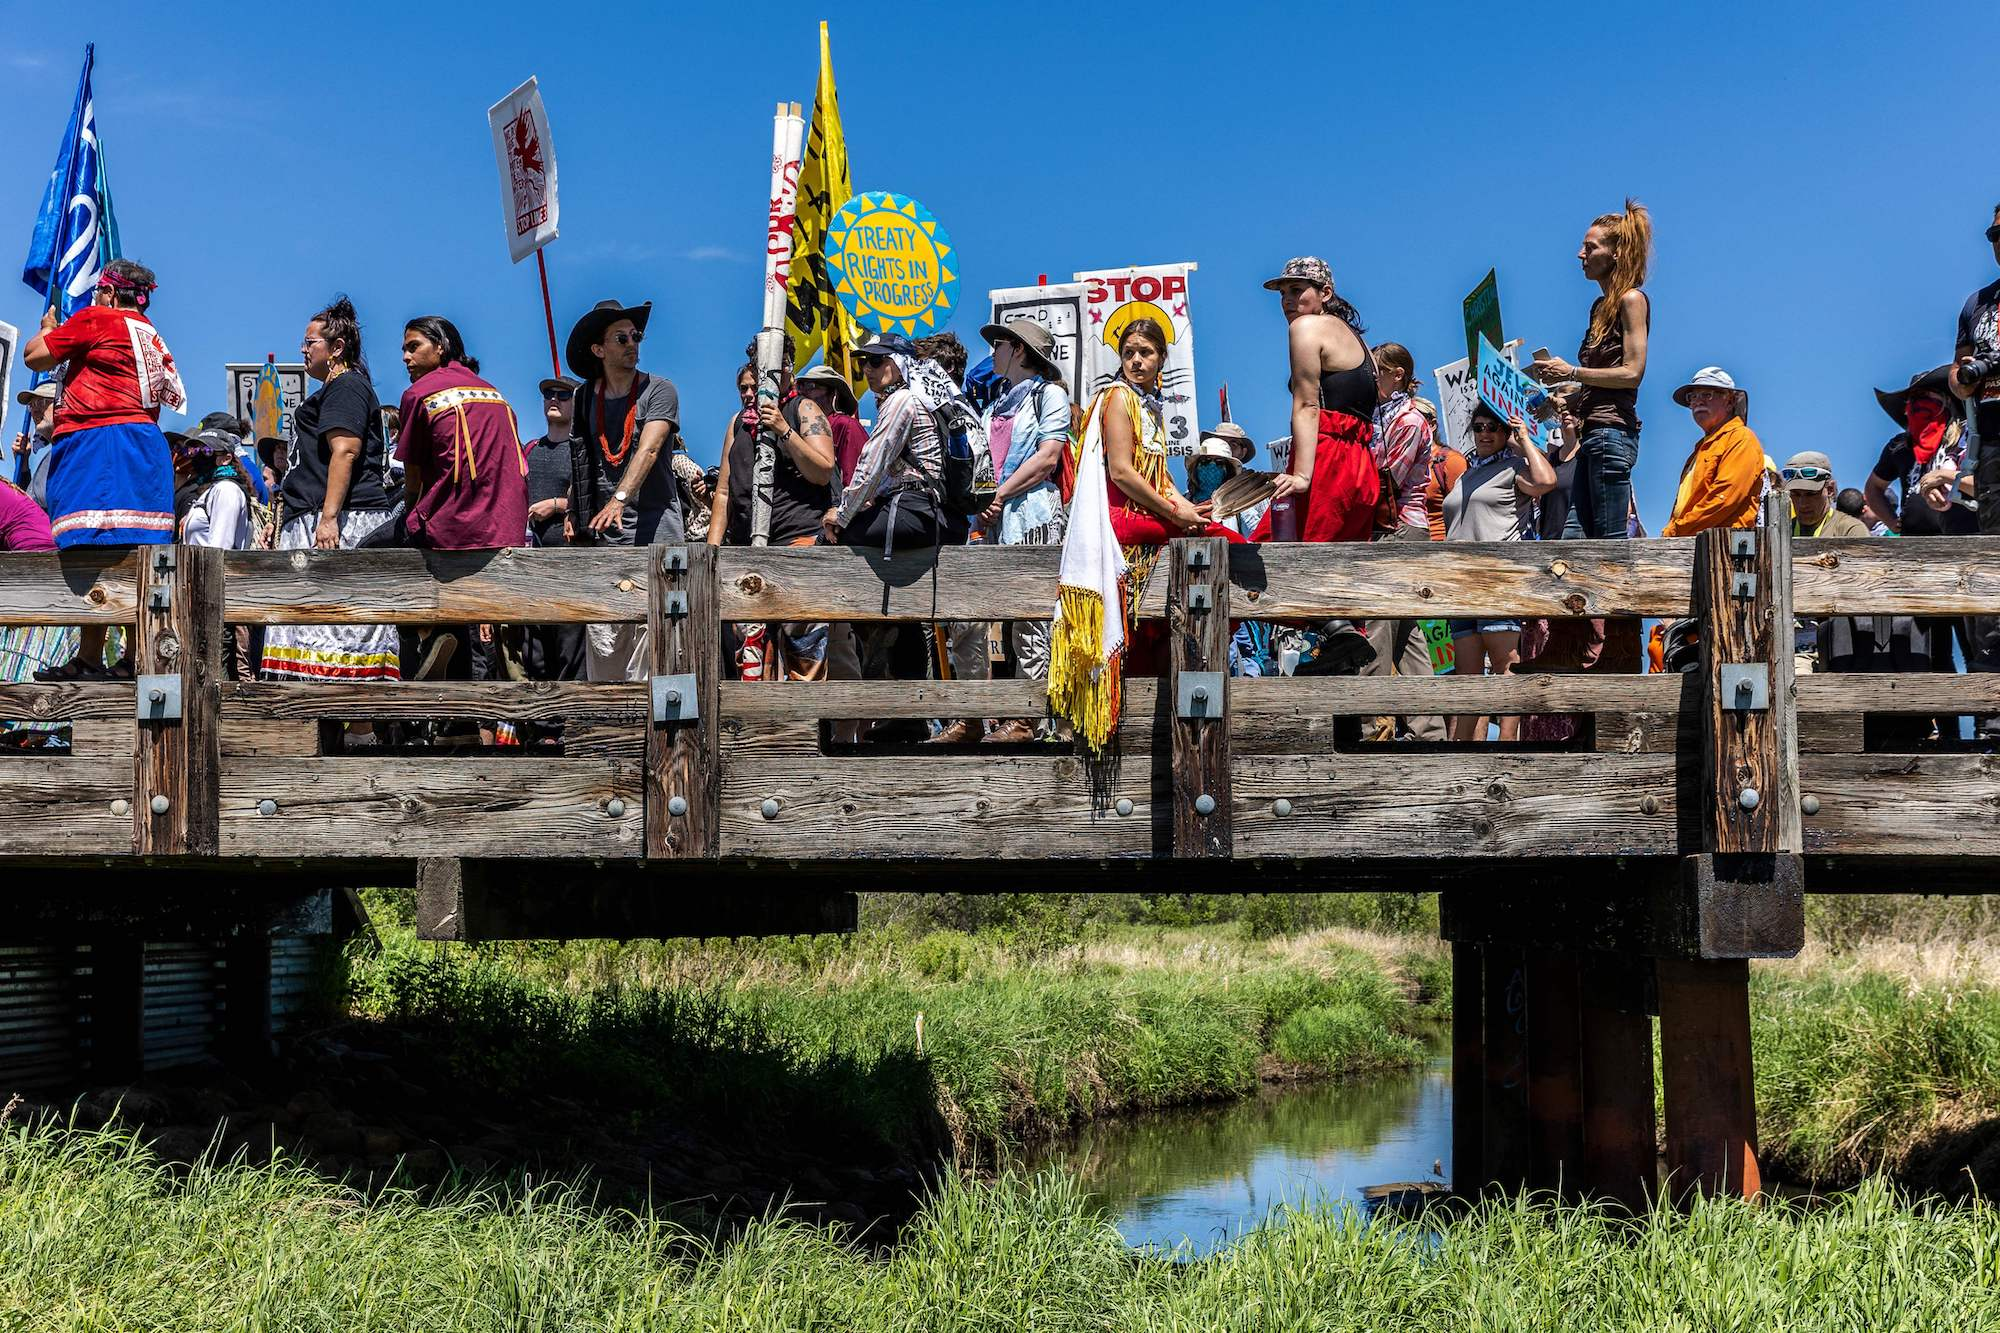 a large group of activists, many of whom are dressed in traditional indigenous clothing, stand on a wooden bridge over a river thick with green buhes